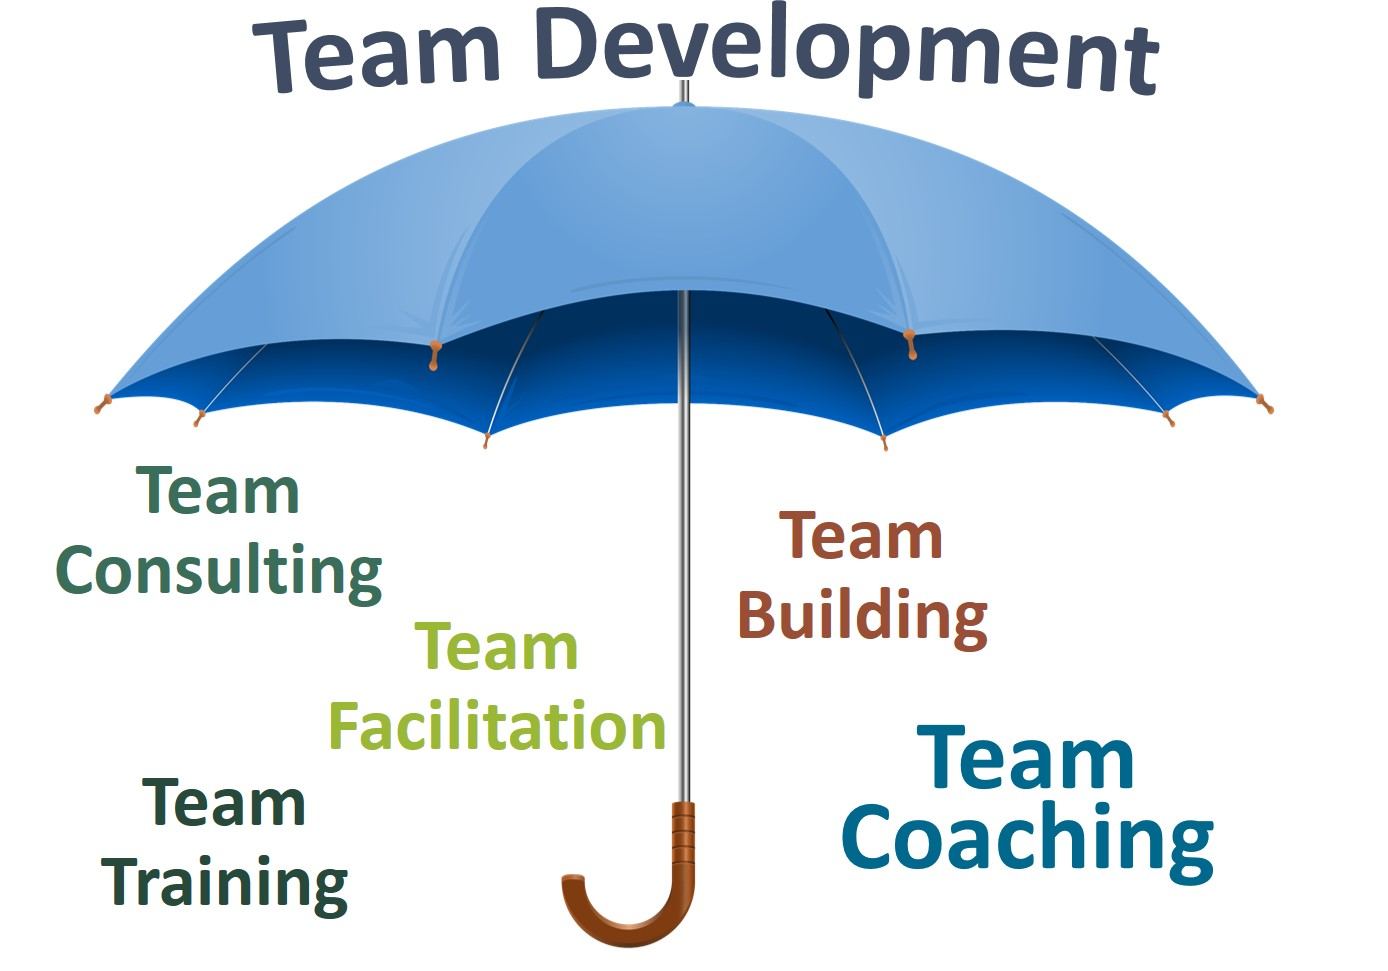 Team Development Modalities - Umbrella.jpg